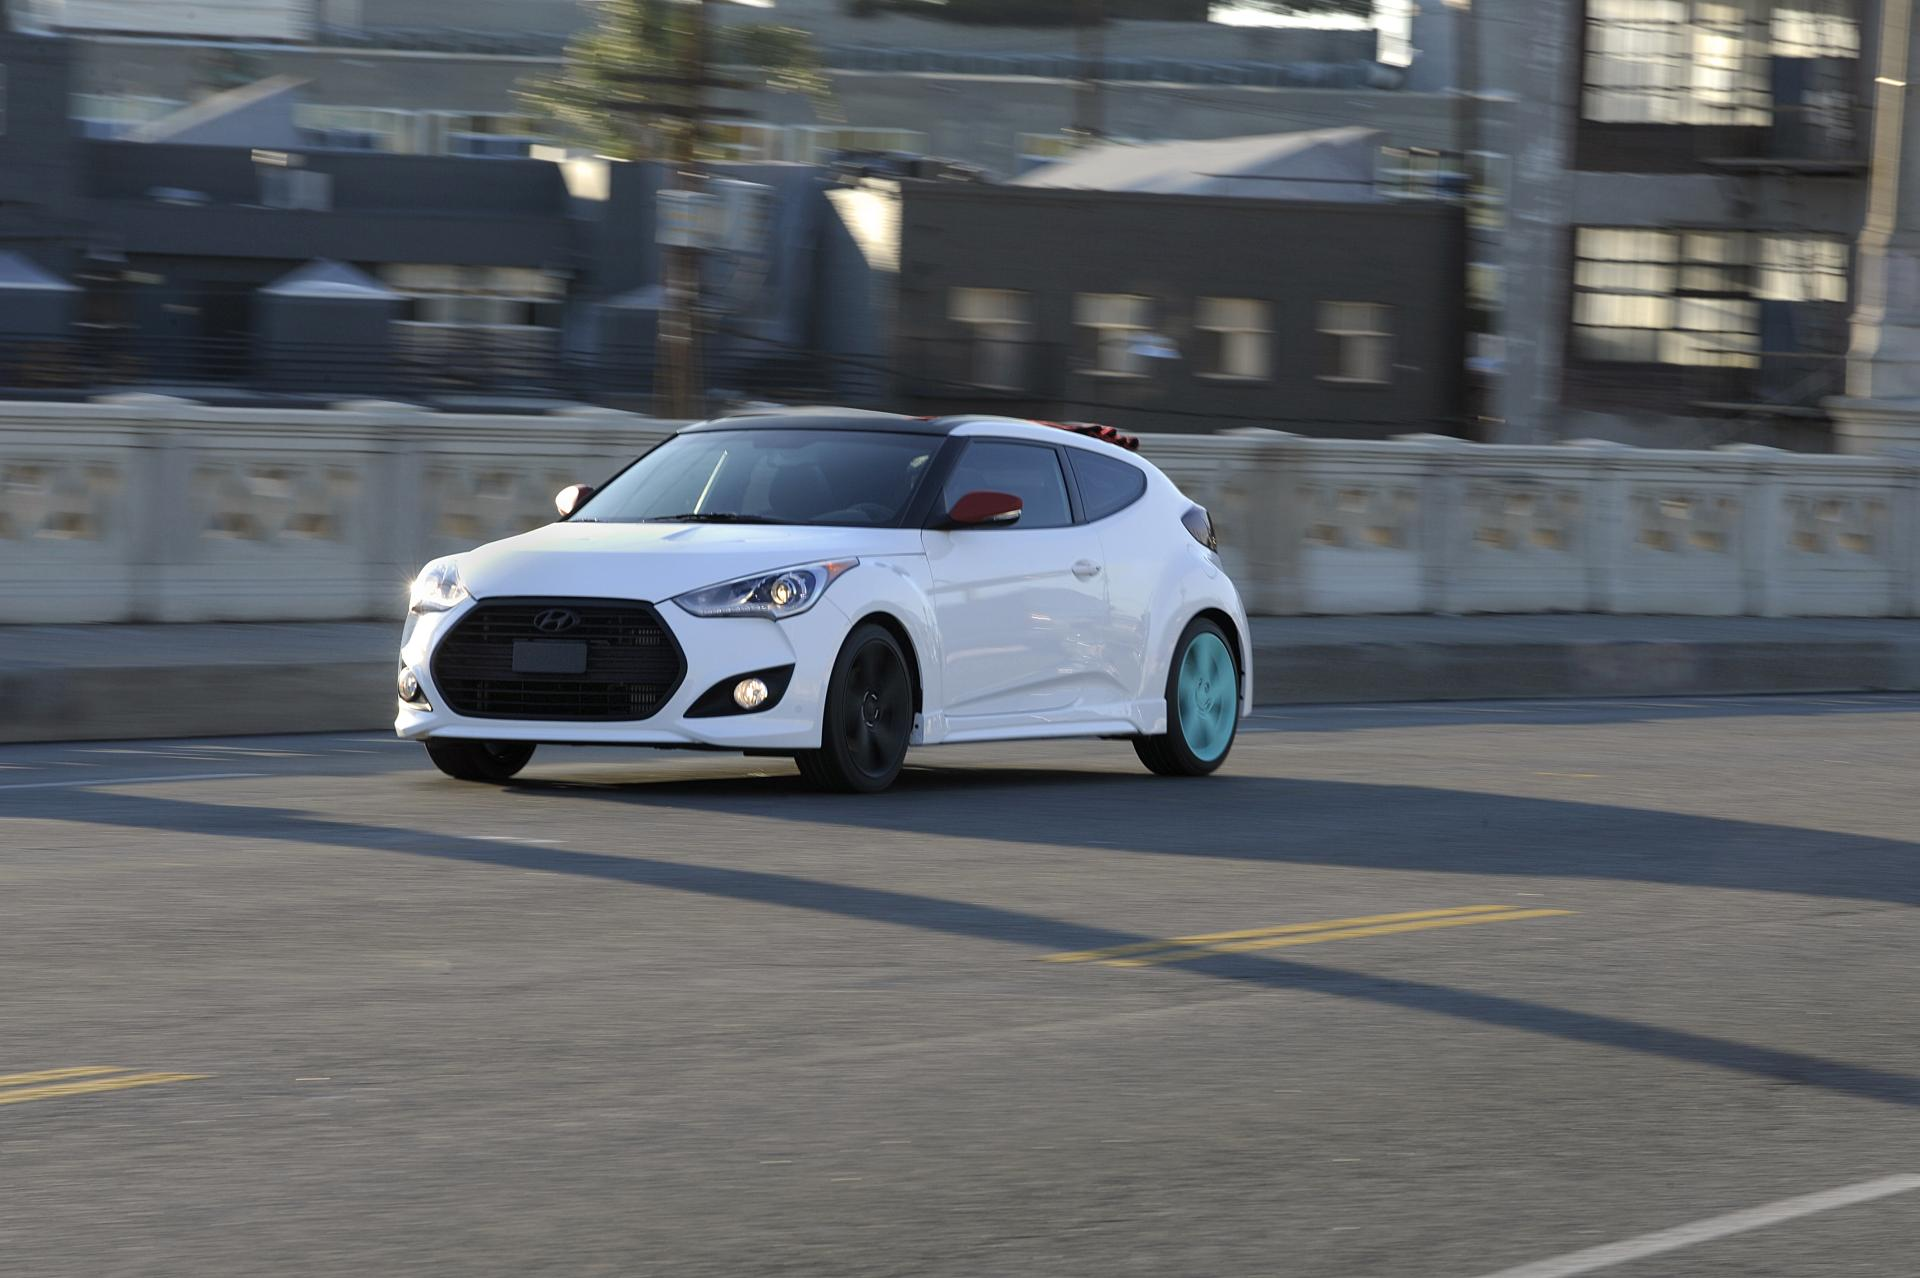 2013 Hyundai Veloster C3 Roll Top Concept